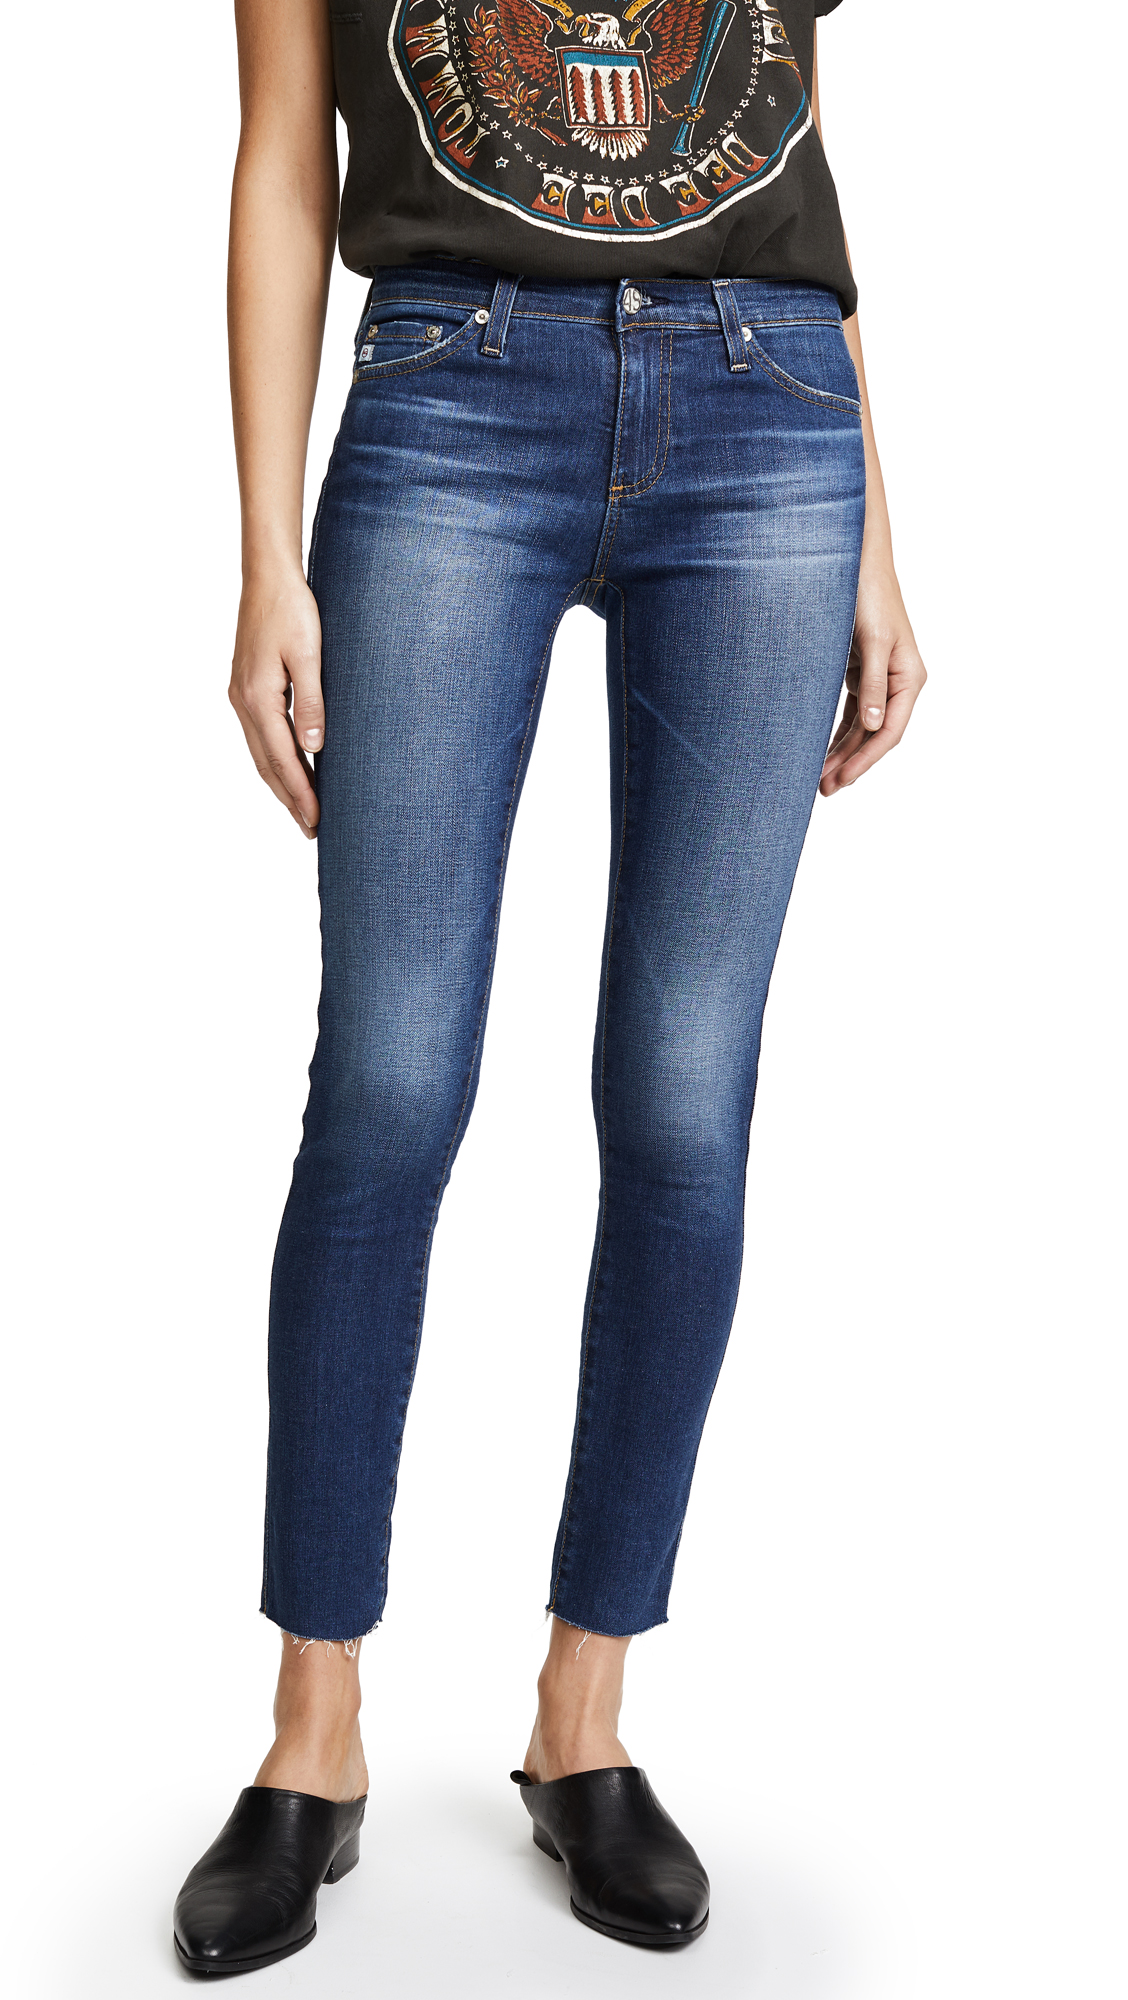 AG Raw Hem Legging Ankle Jeans - 7 Years Break